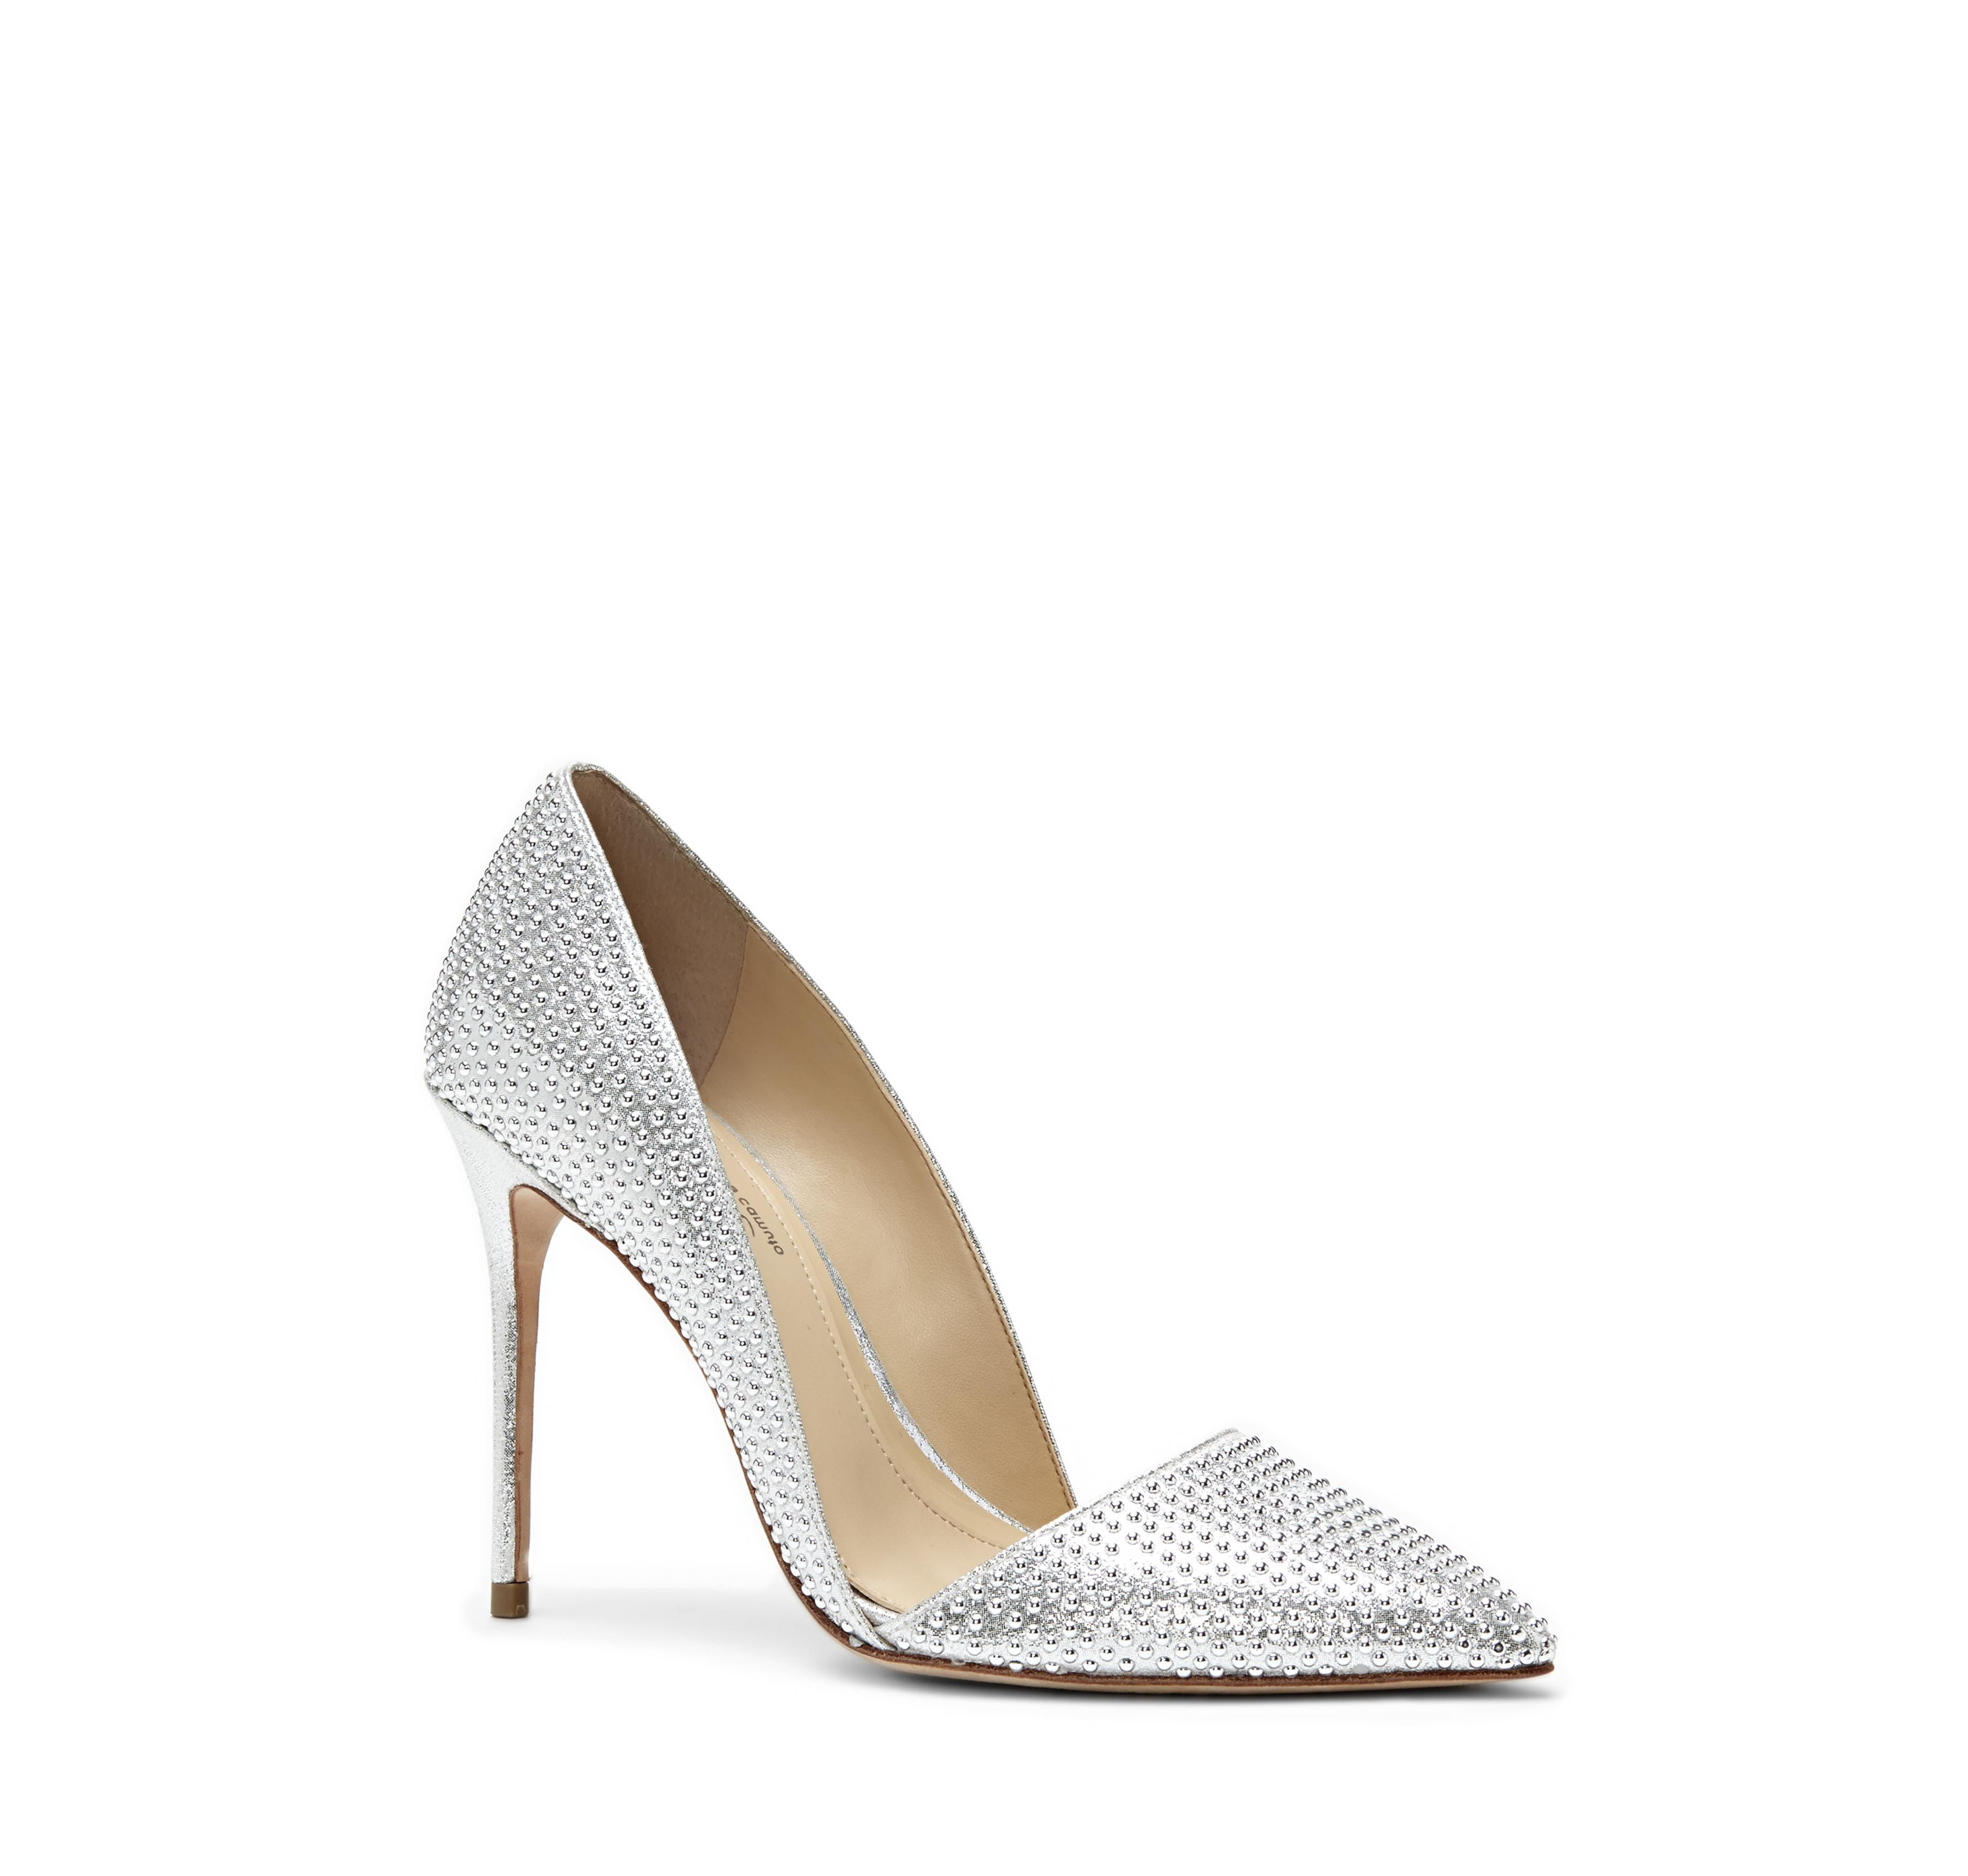 Imagine Vince Camuto Ossie – Studded d'Orsay Pump